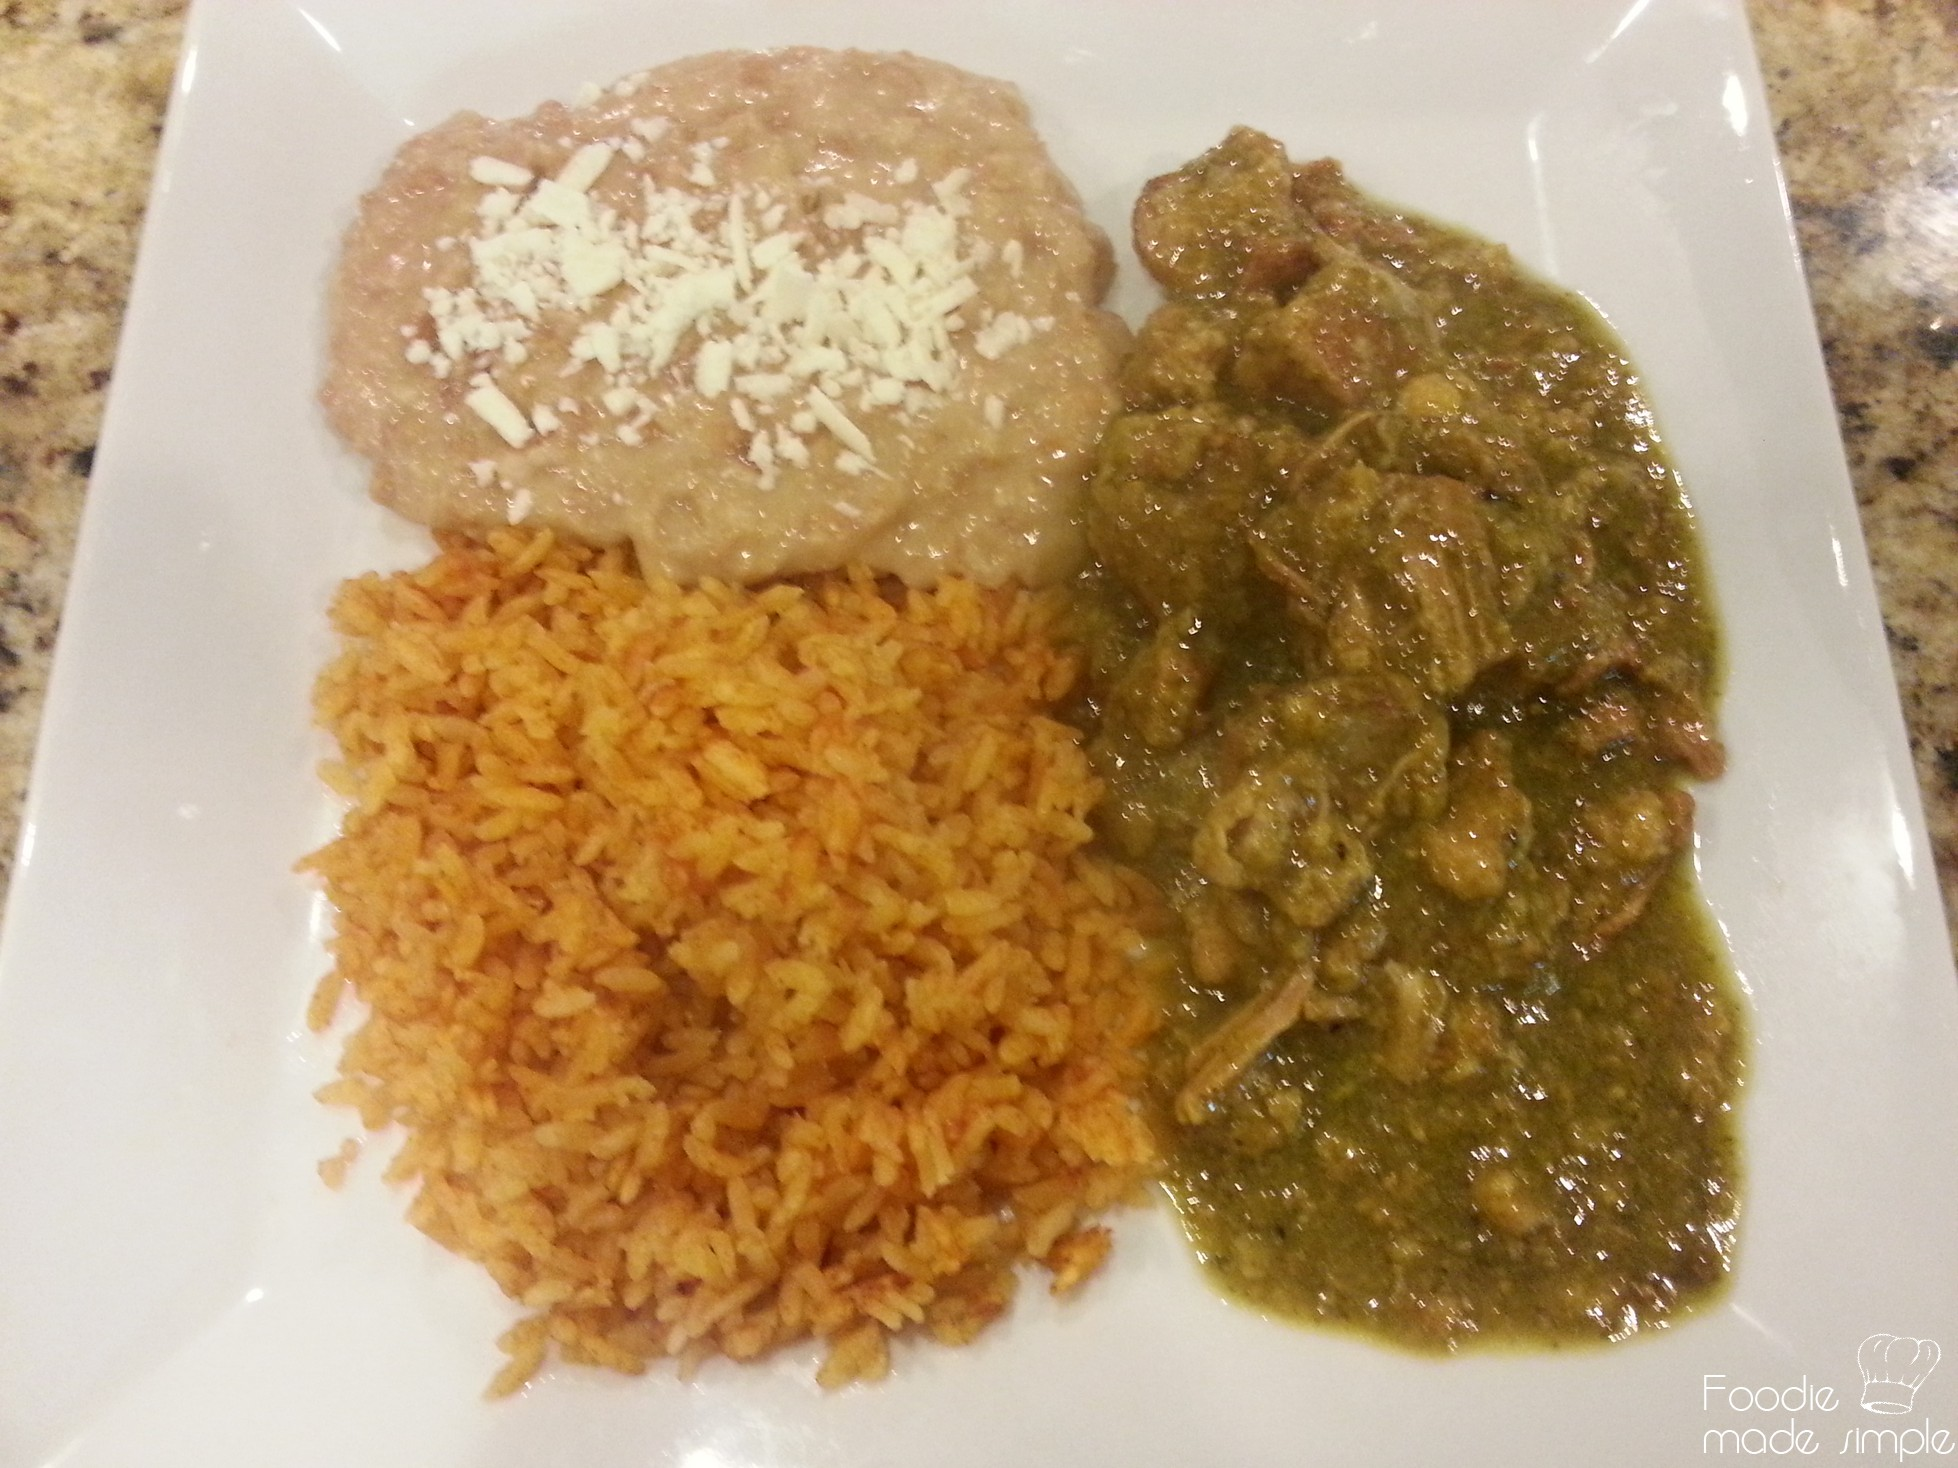 Slow-Cooker Chile Verde (Green Chile and Pork Stew) | Foodie made ...